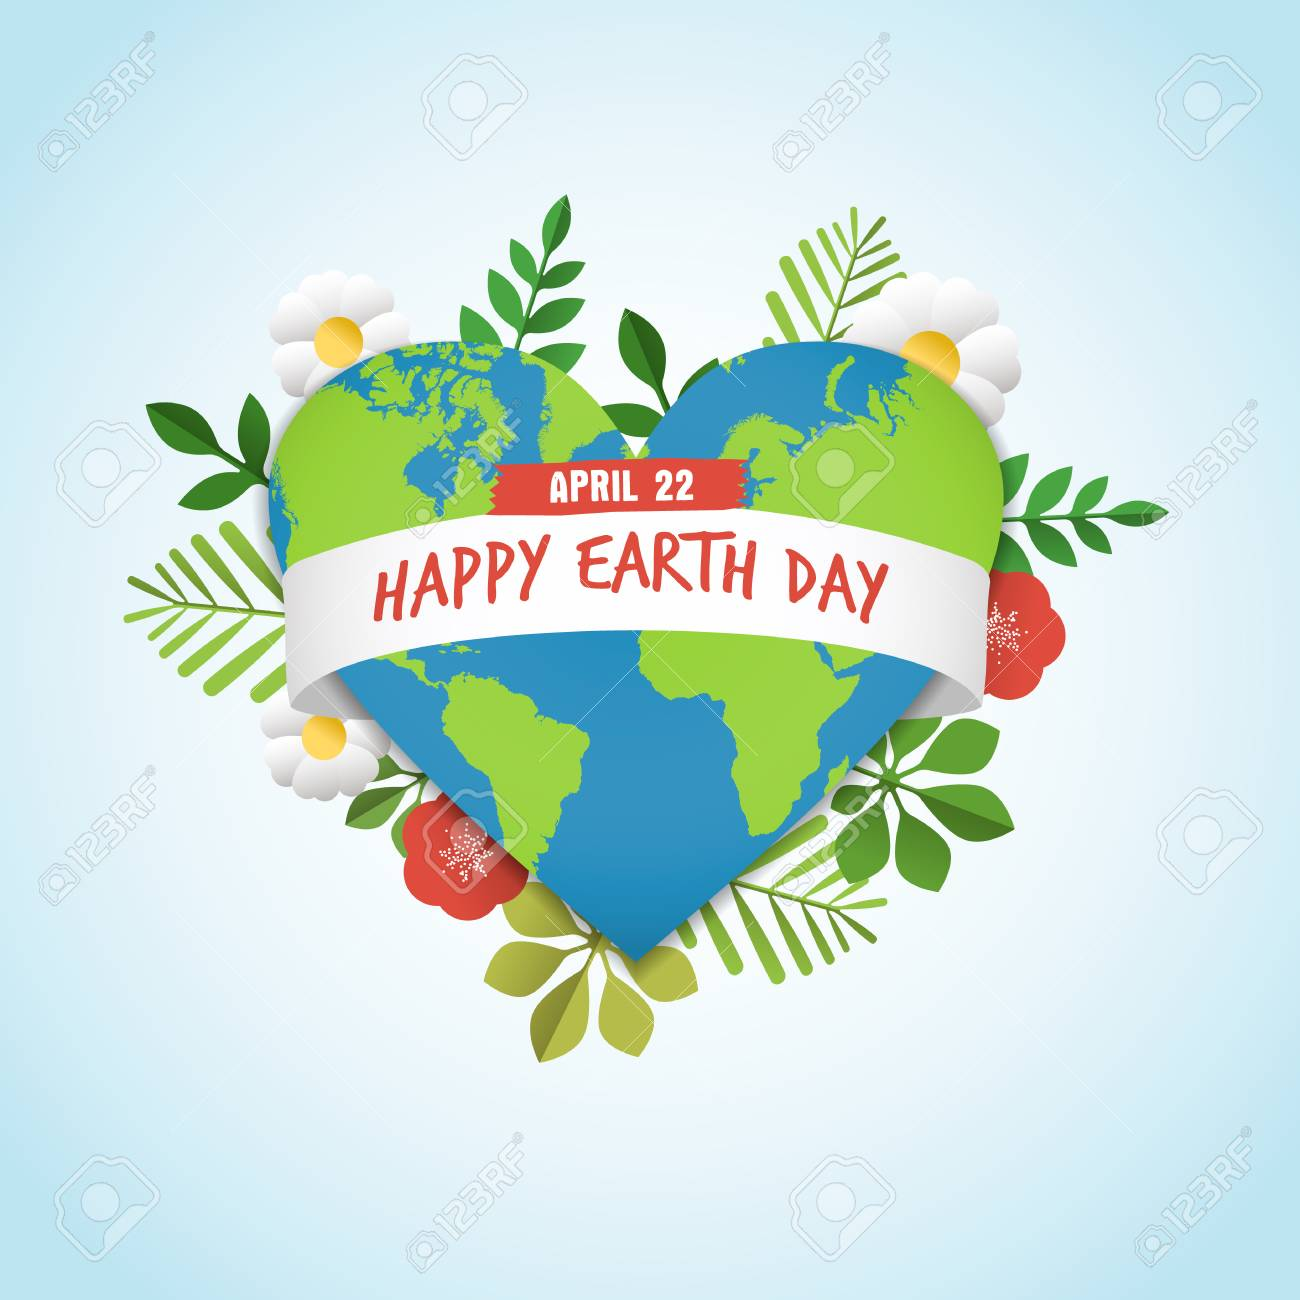 Happy Earth Day greeting card of green planet in heart shape with nature decoration. Includes leaves, flowers and world map for eco friendly celebration. EPS10 vector. - 97750916